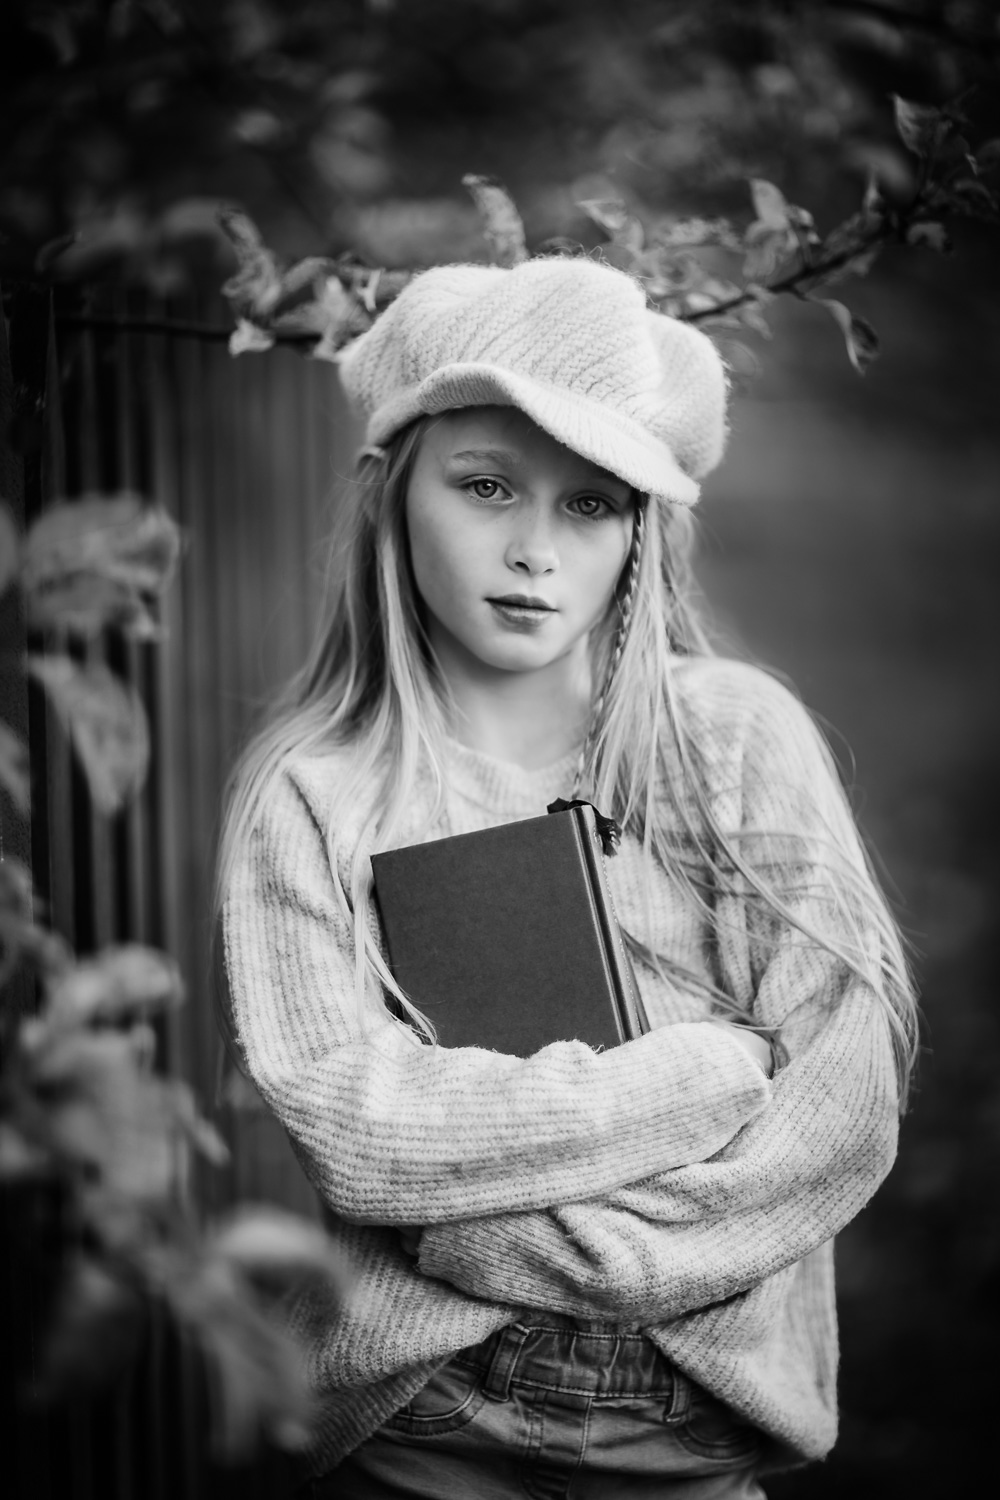 timeless-black-and-white-portrait-of-girl-by-familjefotograf-Sandra-Jolly.jpg